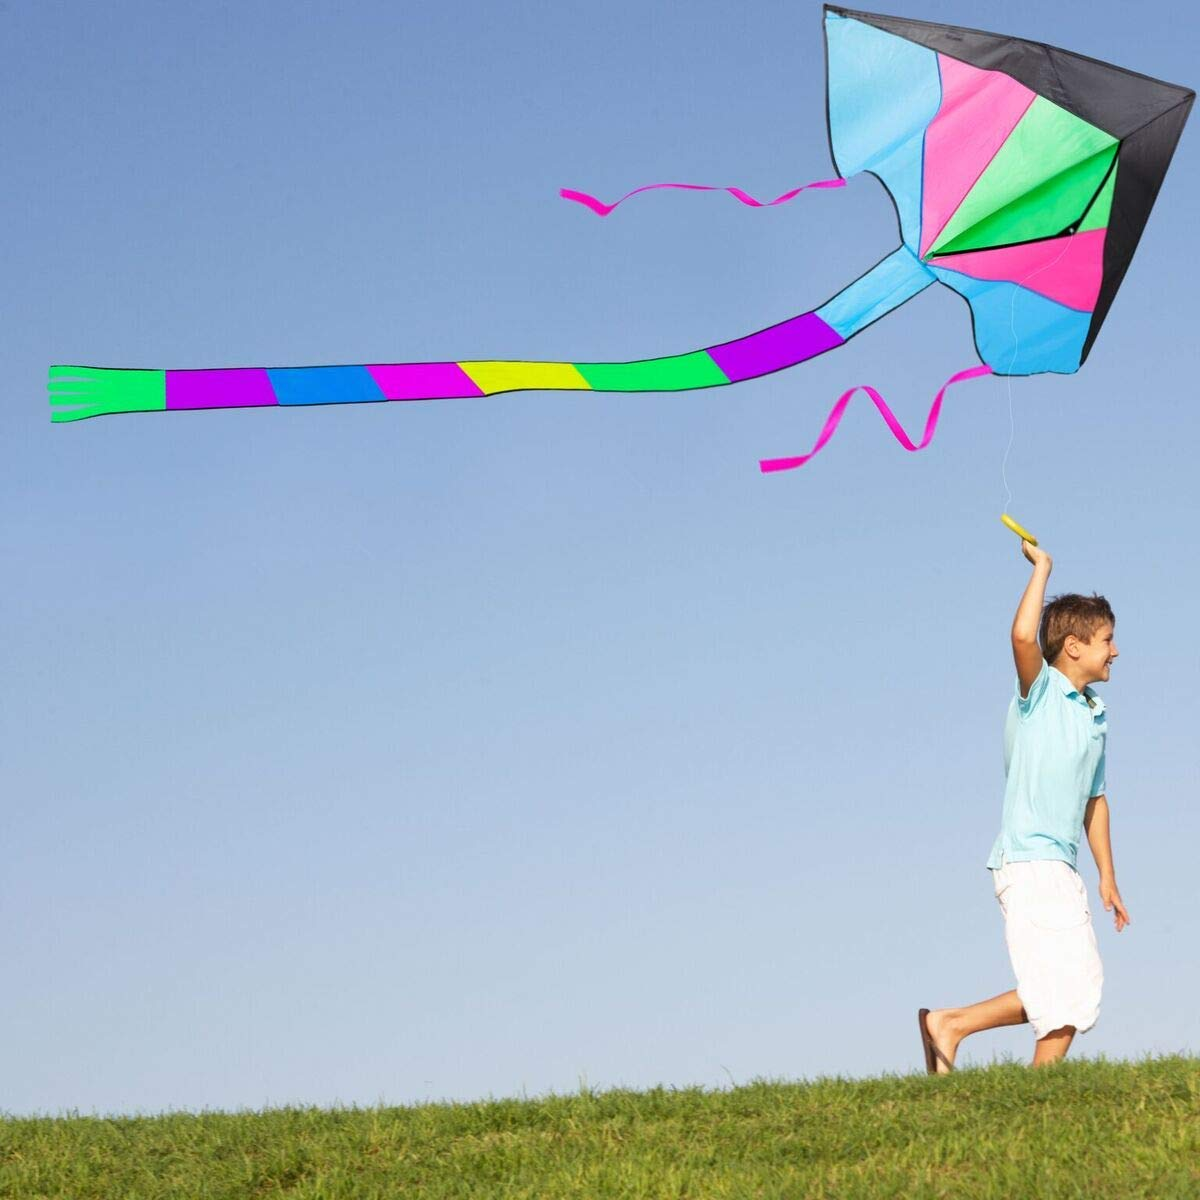 Great kite!